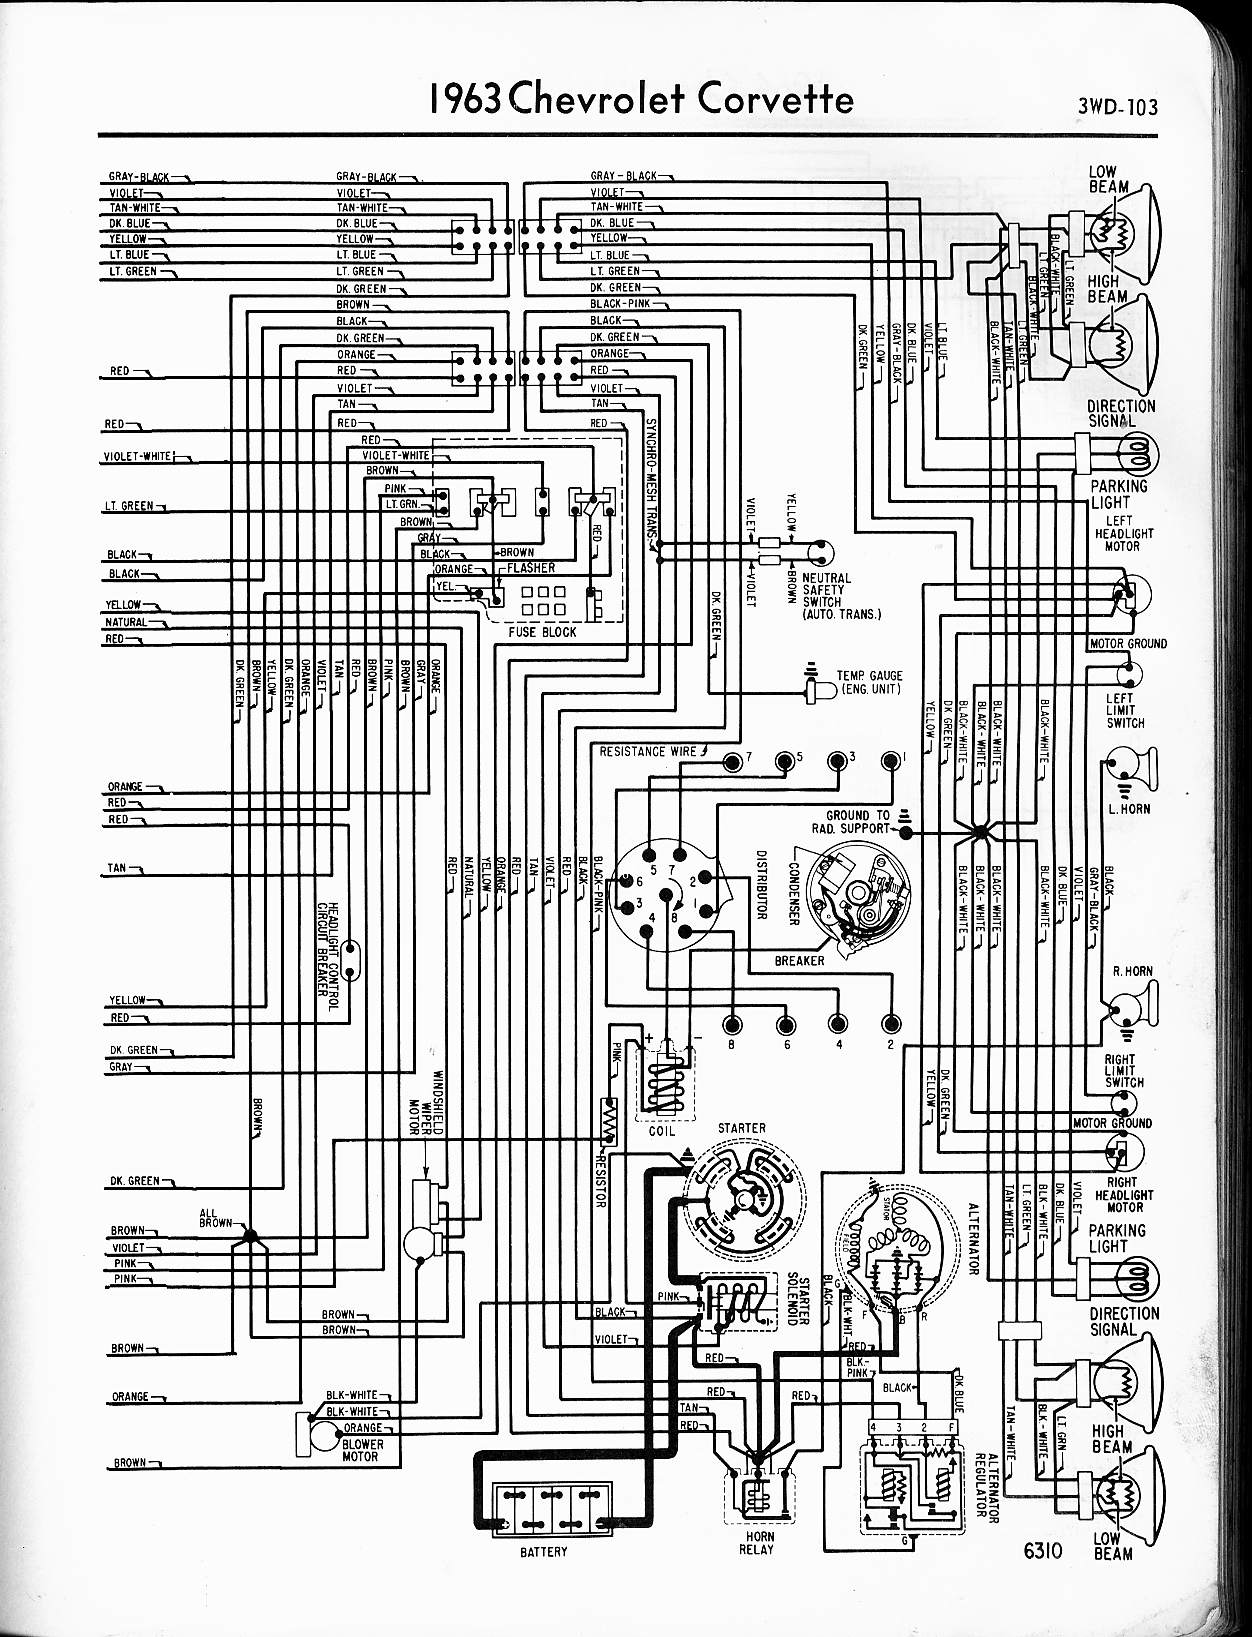 1963 Gmc Pickup Electrical Wiring Opinions About Wiring Diagram \u2022 GMC  Steering Diagram 1963 Gmc Wiring Diagram